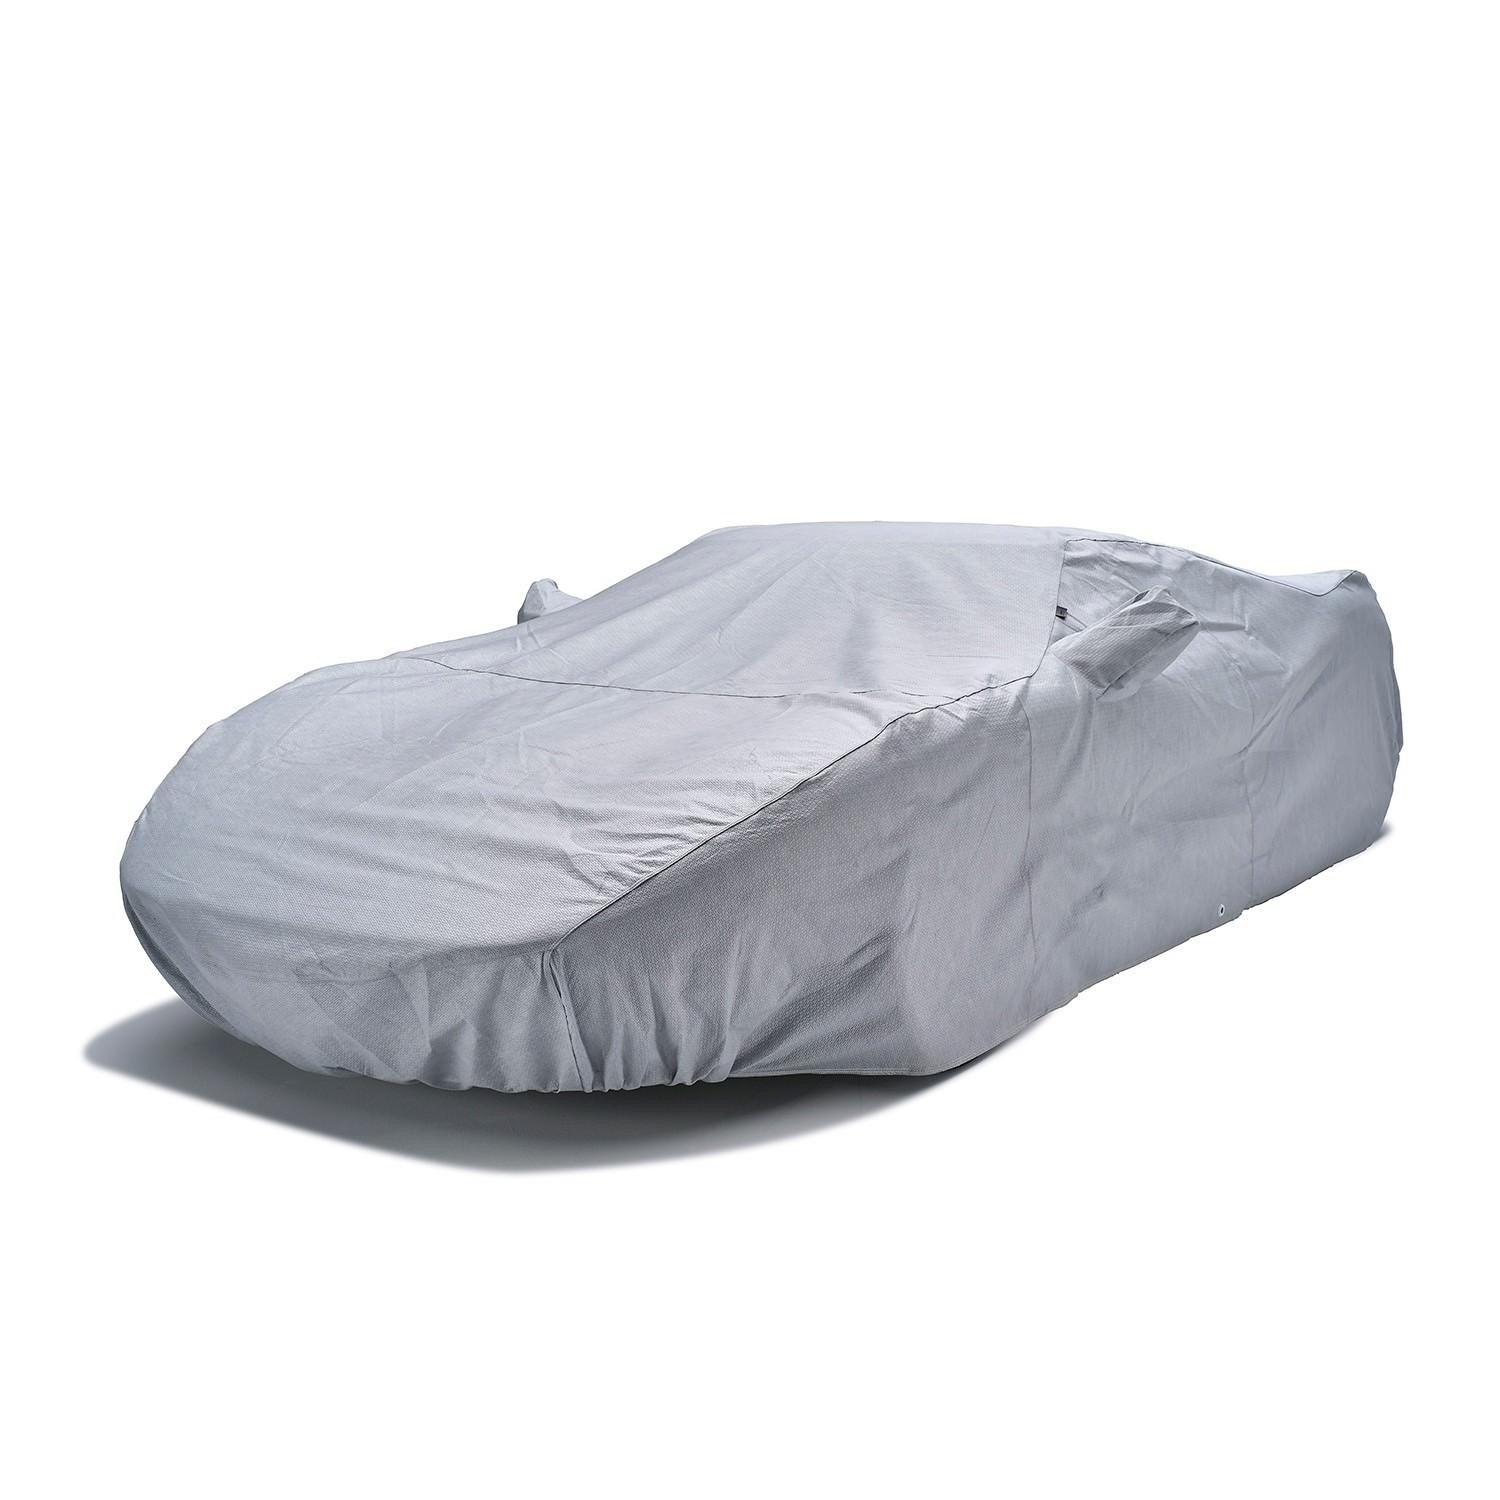 Covercraft Car Covers Indoor and Outdoor